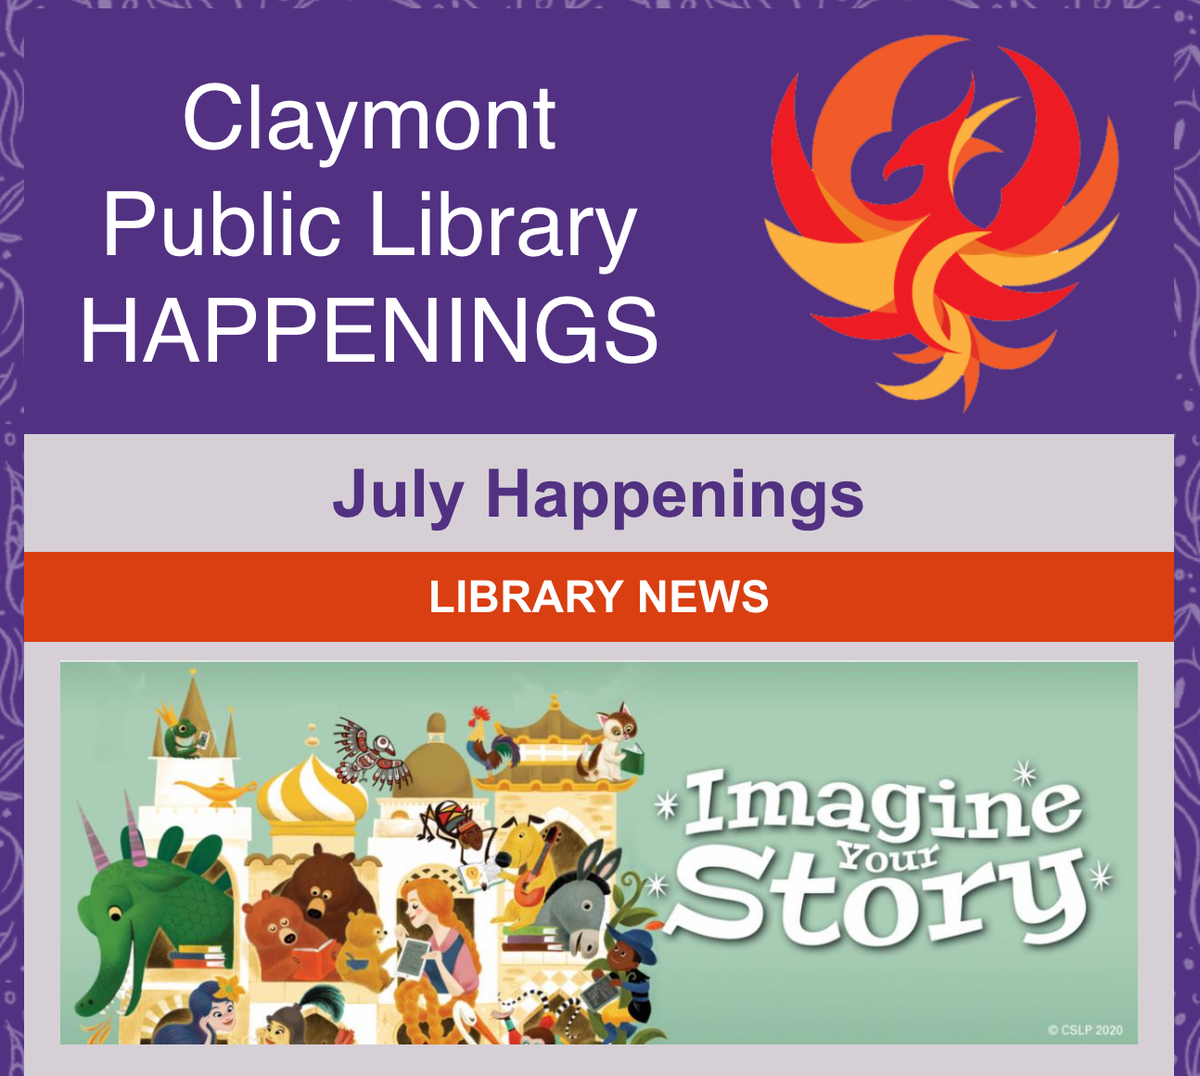 The JULY HAPPENINGS are here! Click the link to read our monthly newsletter >> https://t.co/rAN8QDLrJX  Did you know that Claymont Library has a Newsletter? You can sign up here >>> https://t.co/hfc6OSpTfu  #Newsletter #LibraryNews #VirtualHappenings #VirtualWhatsHappening https://t.co/G80YXzvXb2